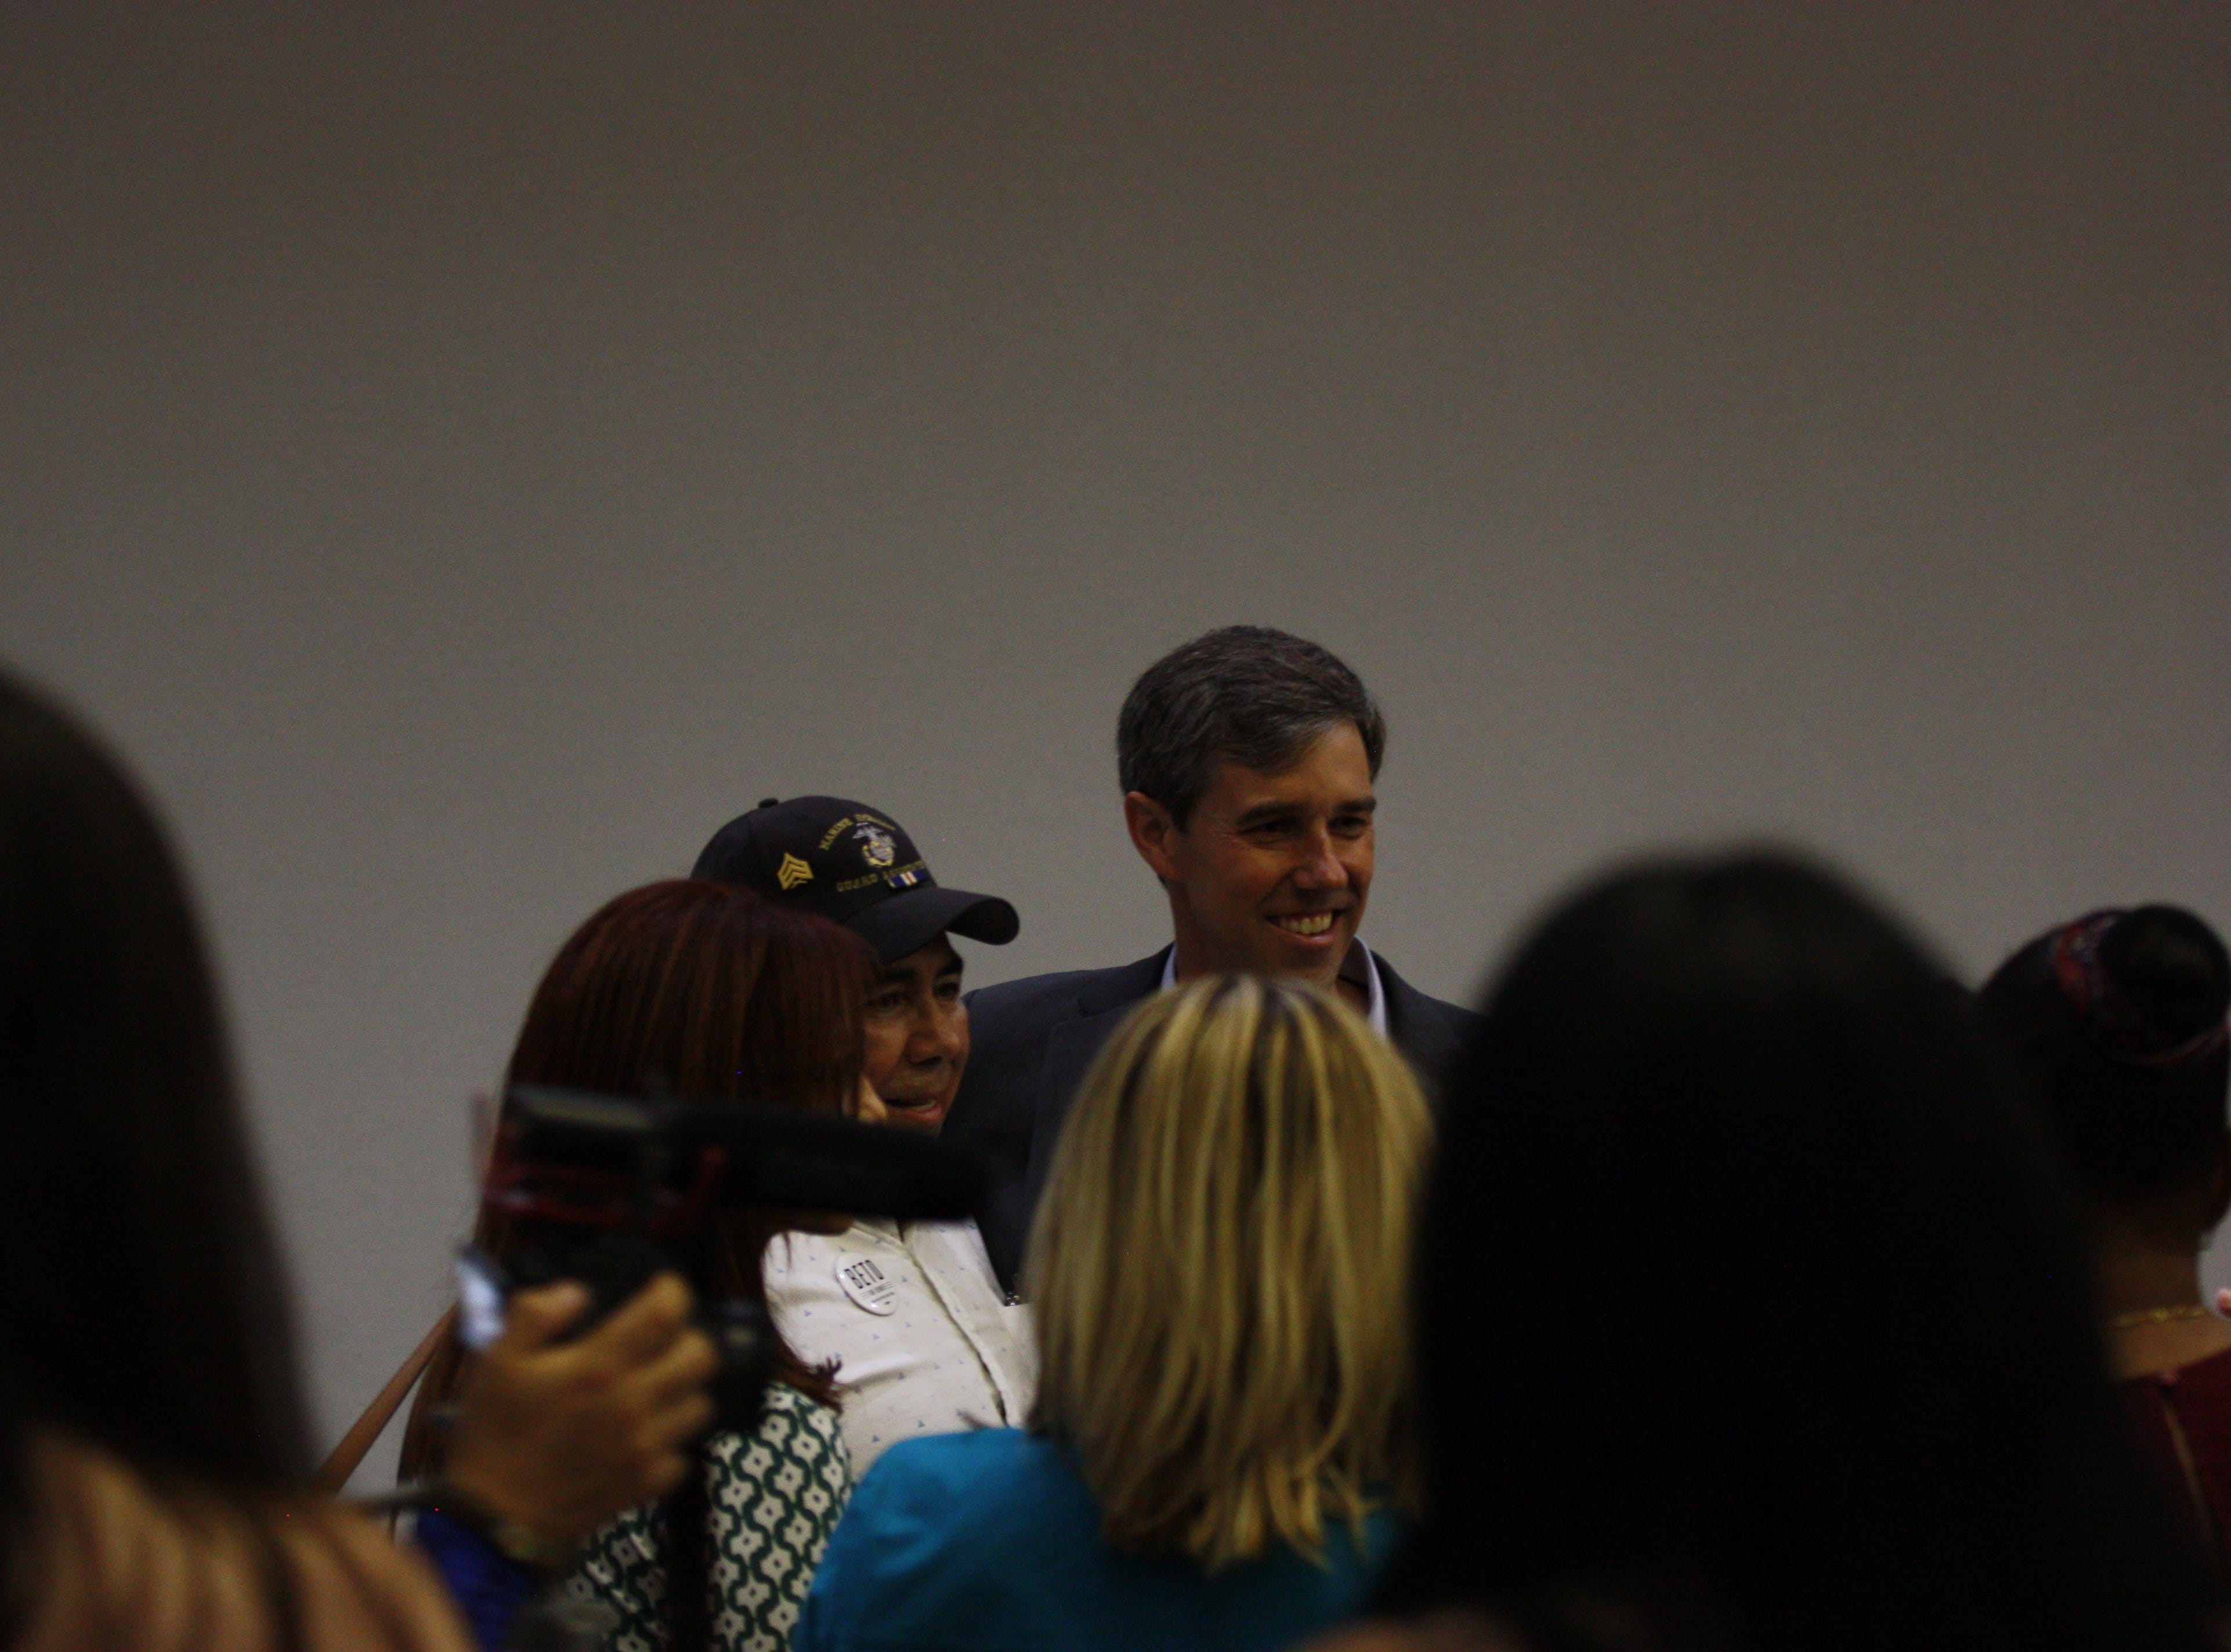 A number of people tried to get a photo with U.S. Rep. Beto O'Rourke before his address at the 44th annual Labor Day Breakfast on Monday in Central El Paso.